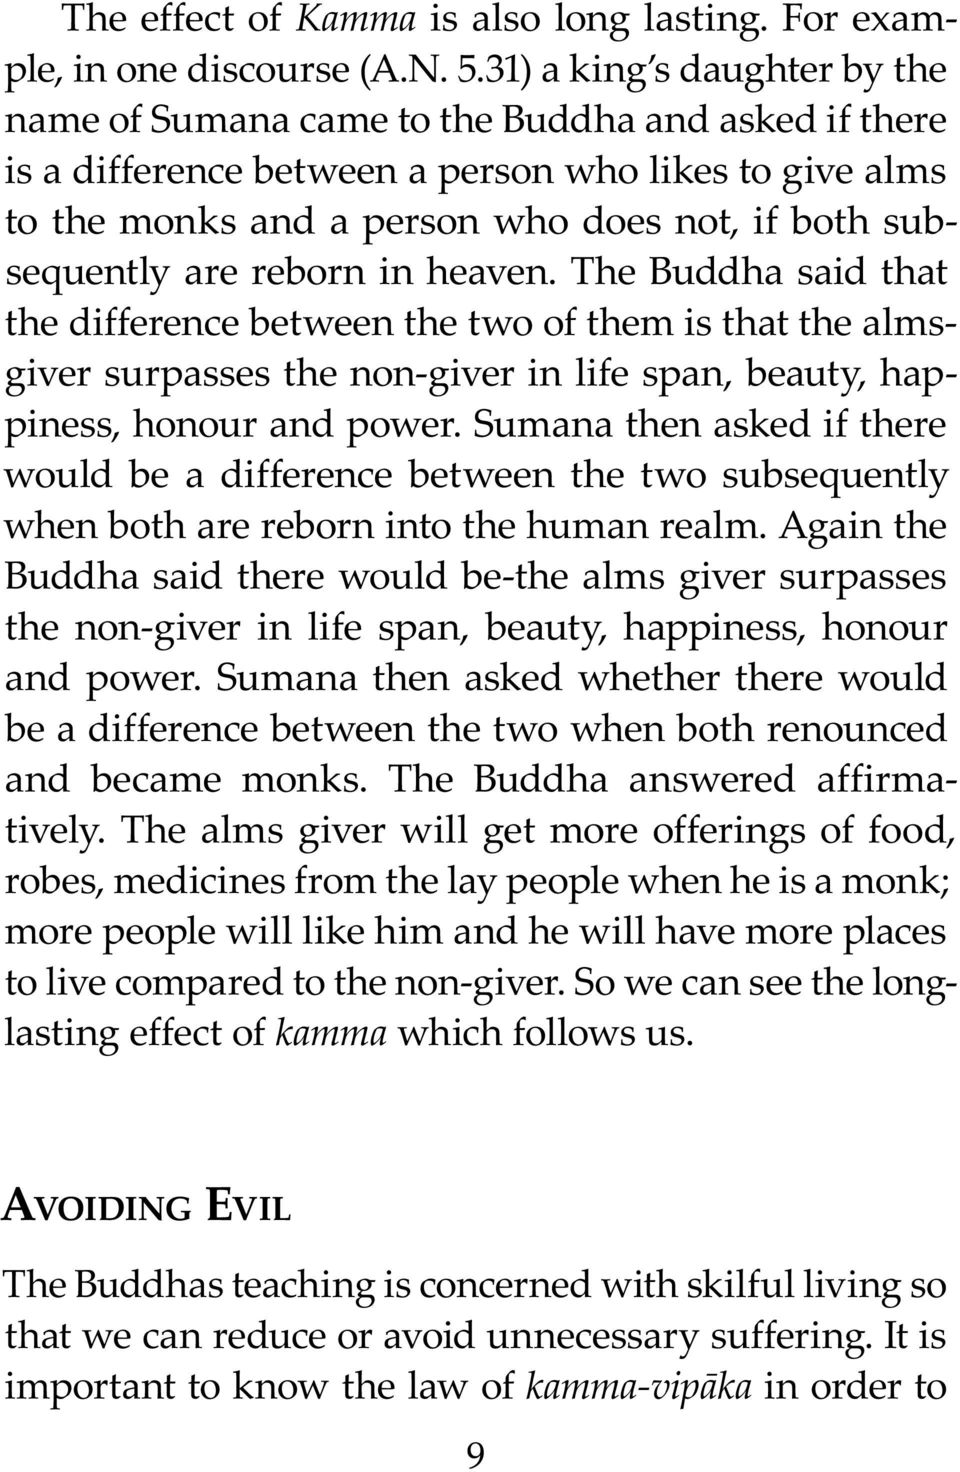 are reborn in heaven. The Buddha said that the difference between the two of them is that the almsgiver surpasses the non-giver in life span, beauty, happiness, honour and power.